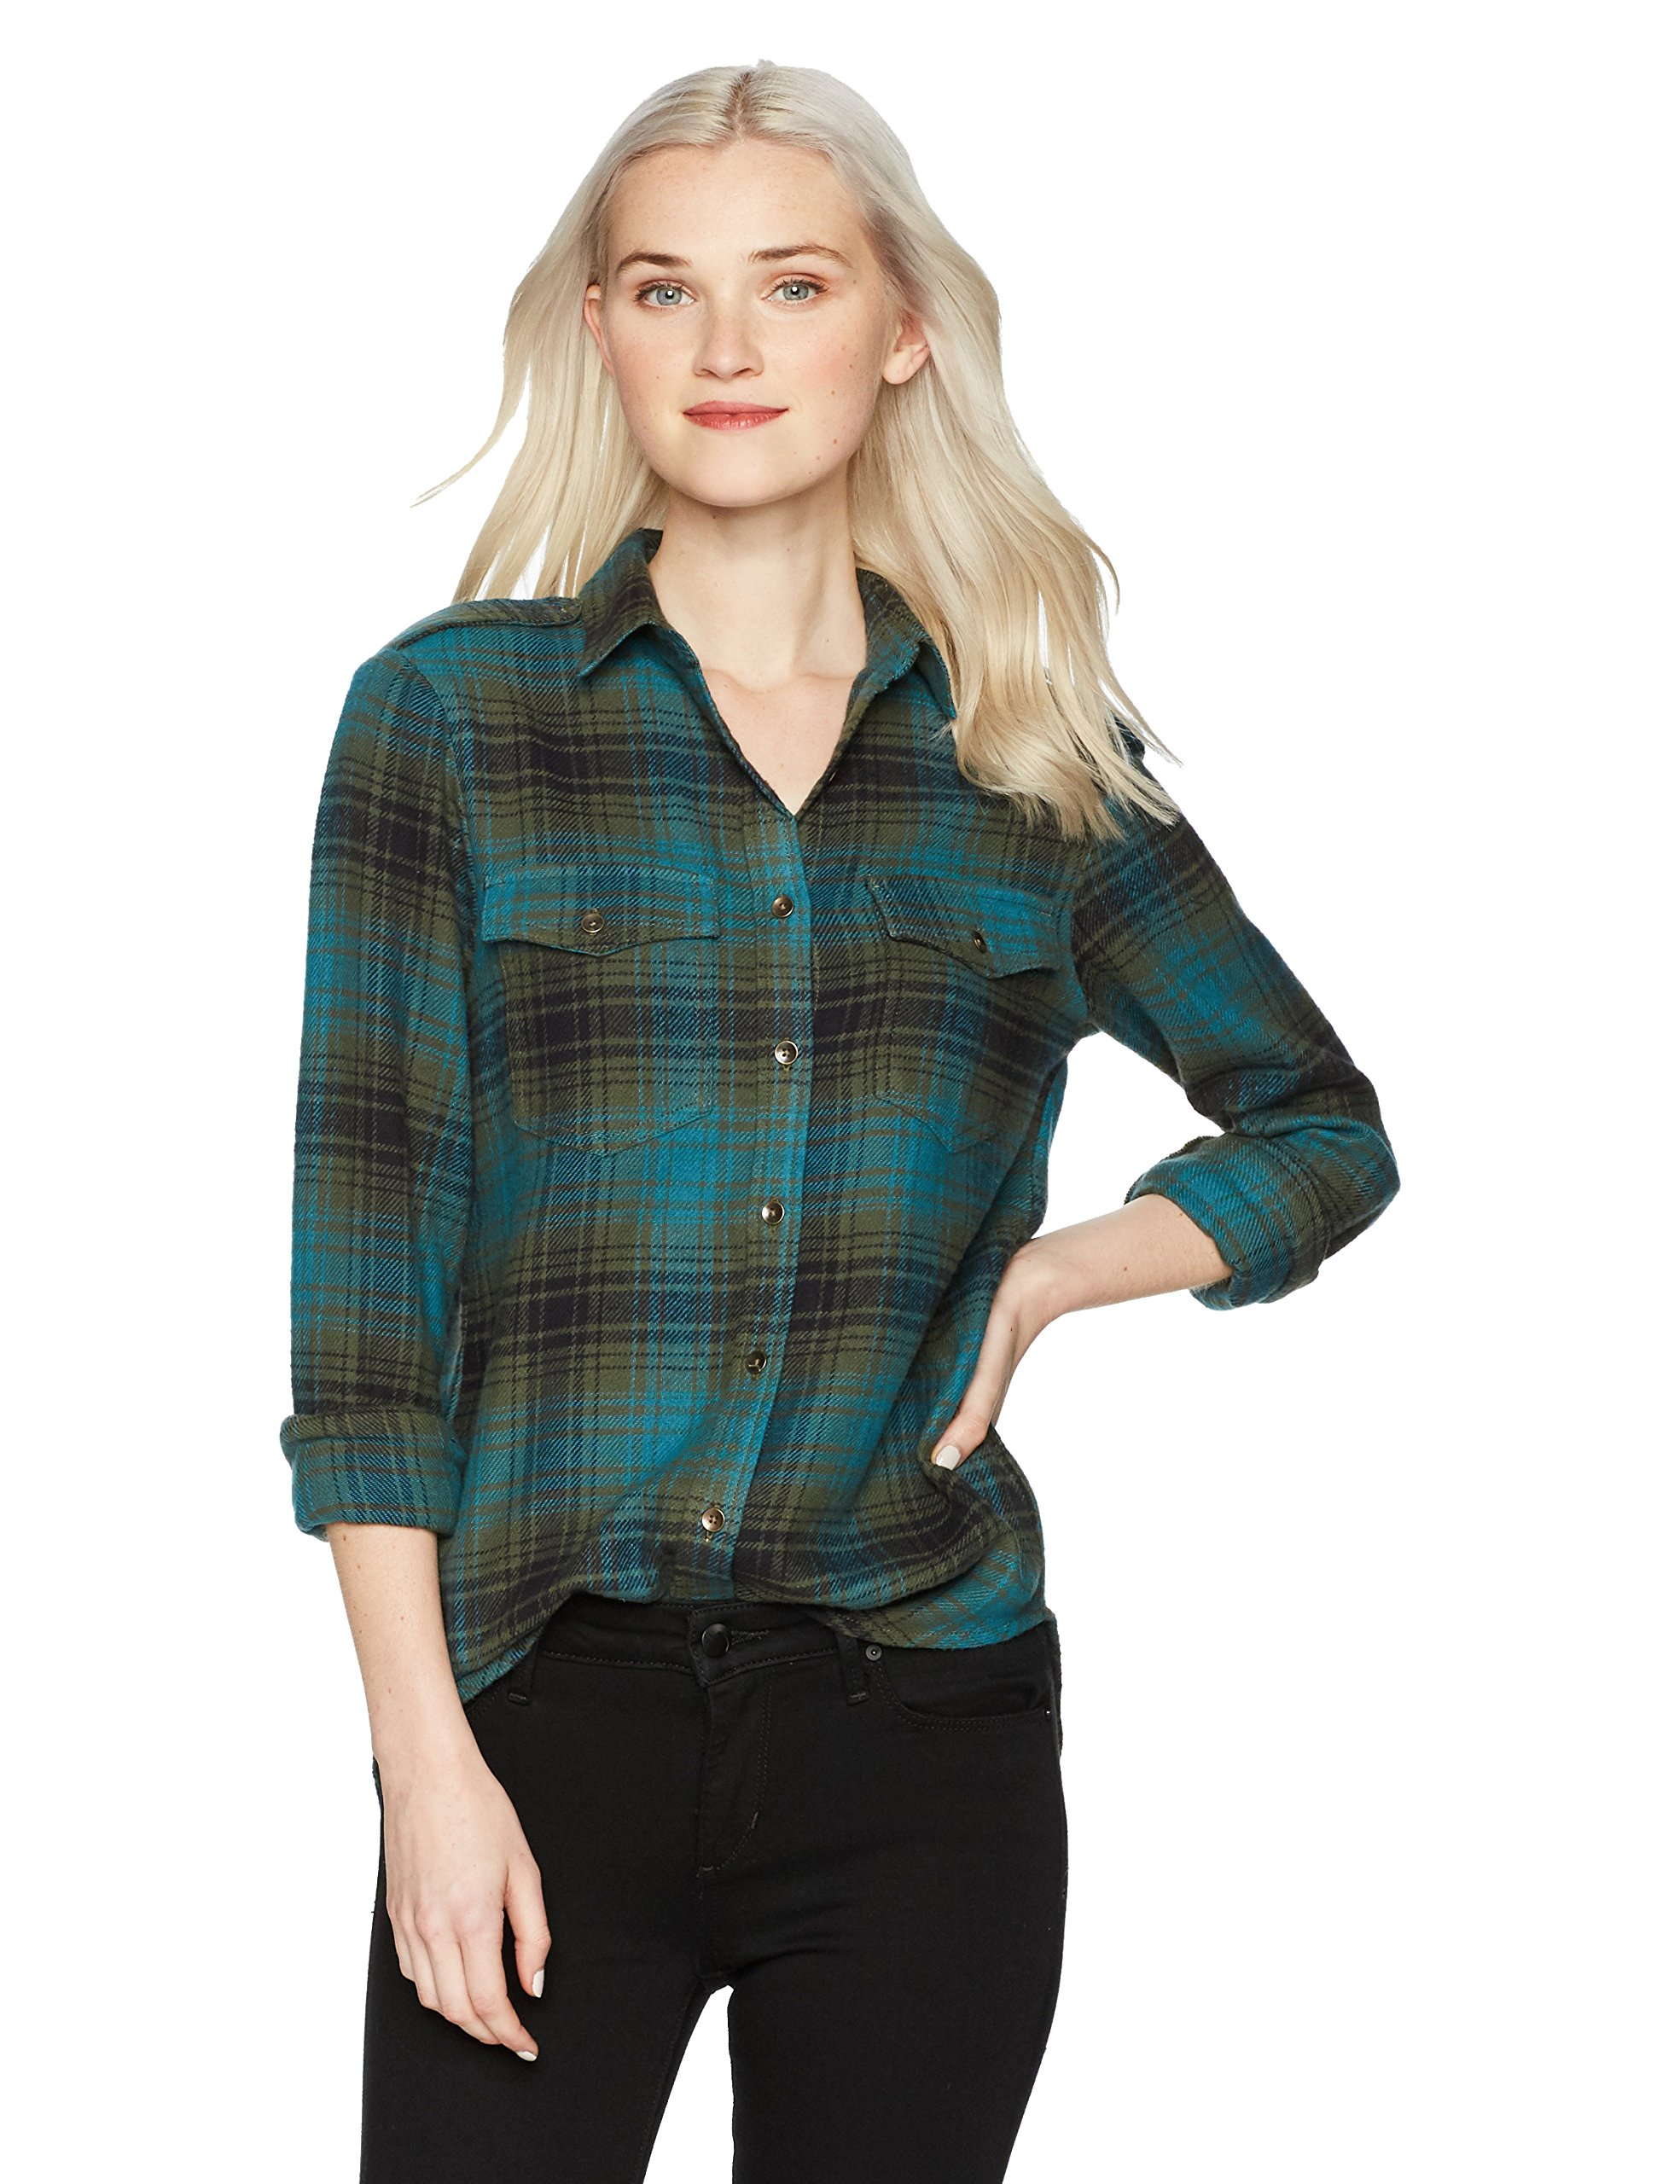 Billabong Women's Venture Out Plaid Top, Deep Marine, L